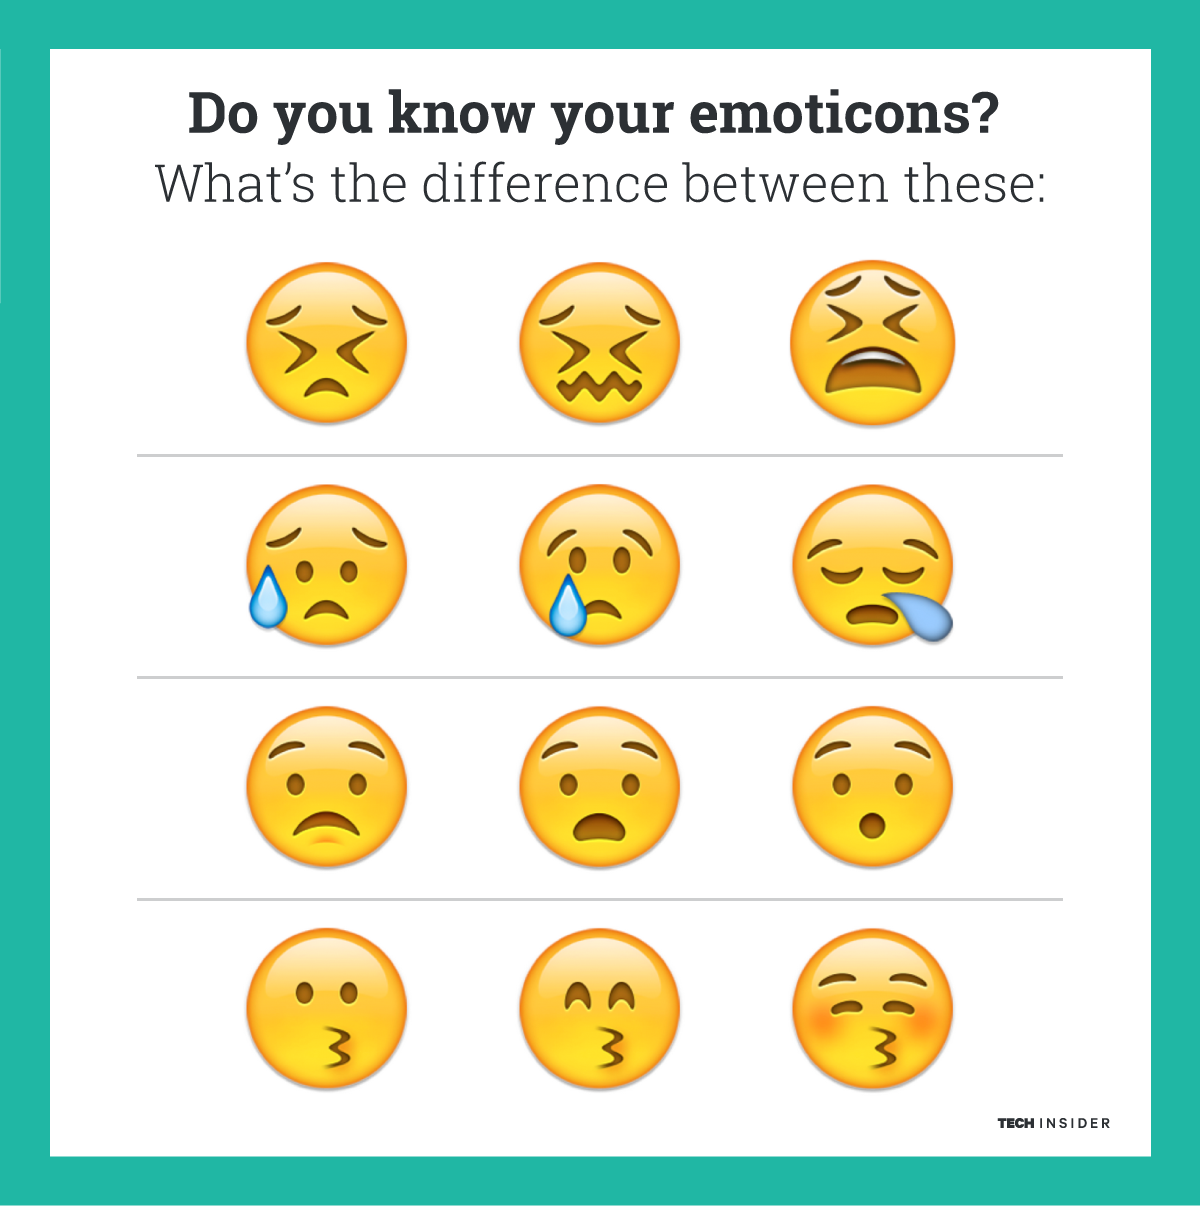 Ti Graphics Emoticons Explained 2 Emojis Meanings Emoticon Meaning Emoticon